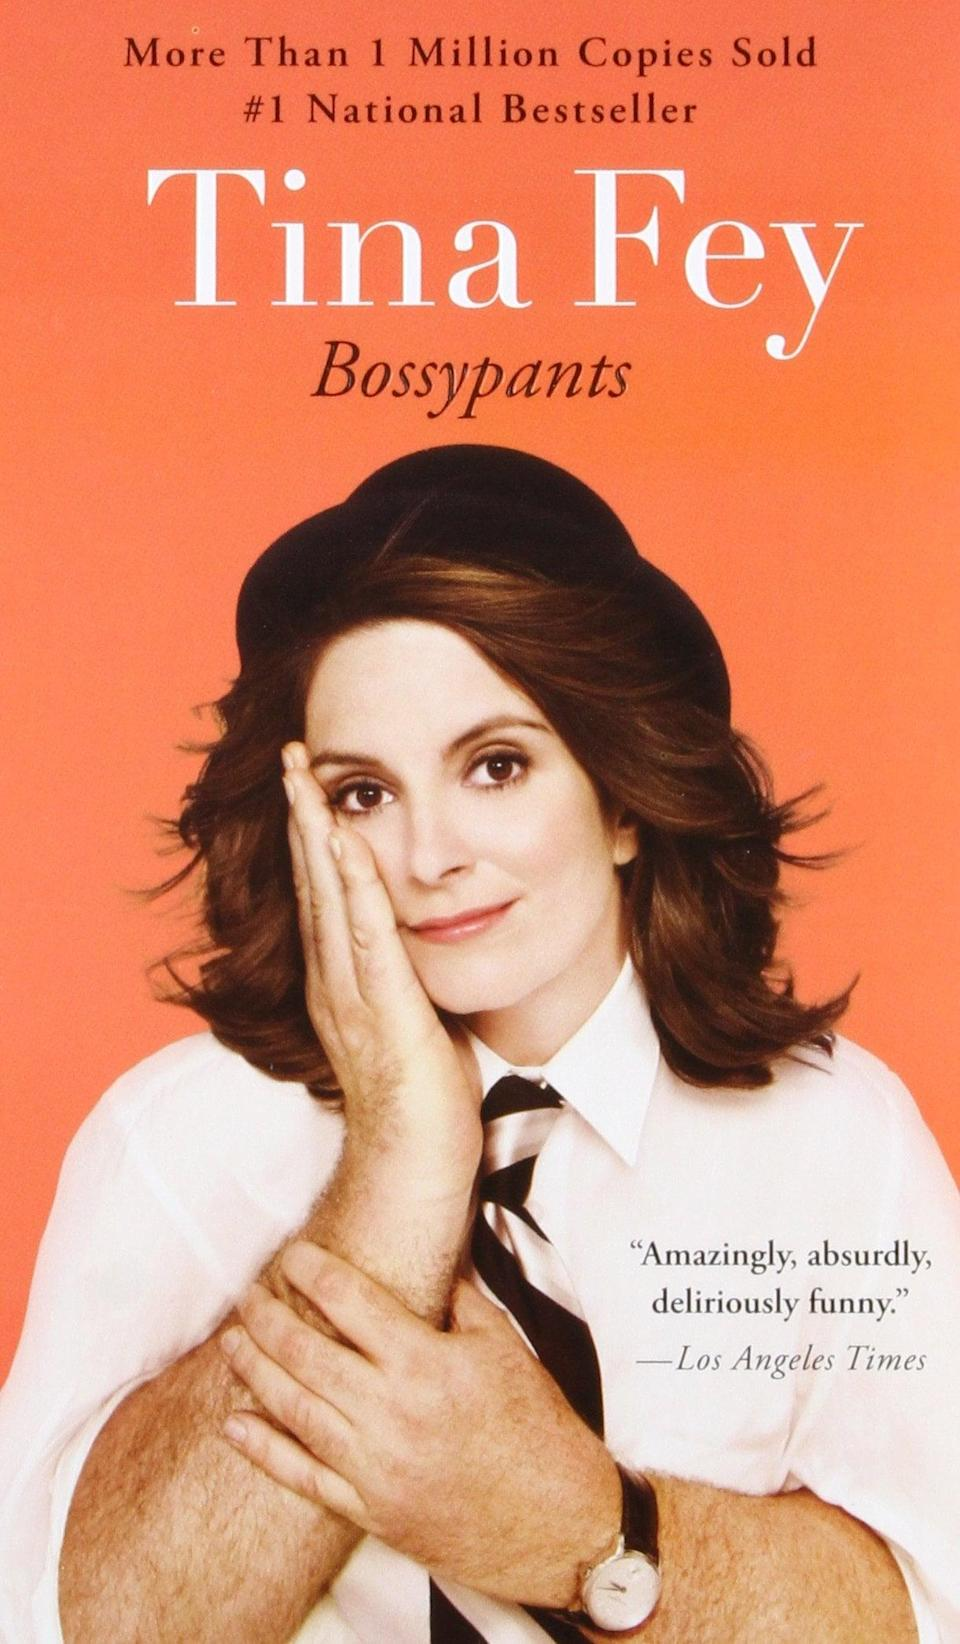 """<p>""""My comfort read is <span><b>Bossypants</b></span> ($11) by <a class=""""link rapid-noclick-resp"""" href=""""https://www.popsugar.co.uk/Tina-Fey"""" rel=""""nofollow noopener"""" target=""""_blank"""" data-ylk=""""slk:Tina Fey"""">Tina Fey</a>. I don't usually like to re-read books but I can't help but revisit this every few years. Sometimes if I'm having a particularly rough day, I'll pick it up to read a couple of chapters and it never fails to make me feel better. The chapter titled 'I Don't Care If You Like It' has one of my favorite quotes of all time that I tend to repeat to myself basically every day: 'Do your thing and don't care if they like it.'"""" - Kelsey Kennick, senior manager, commerce</p>"""